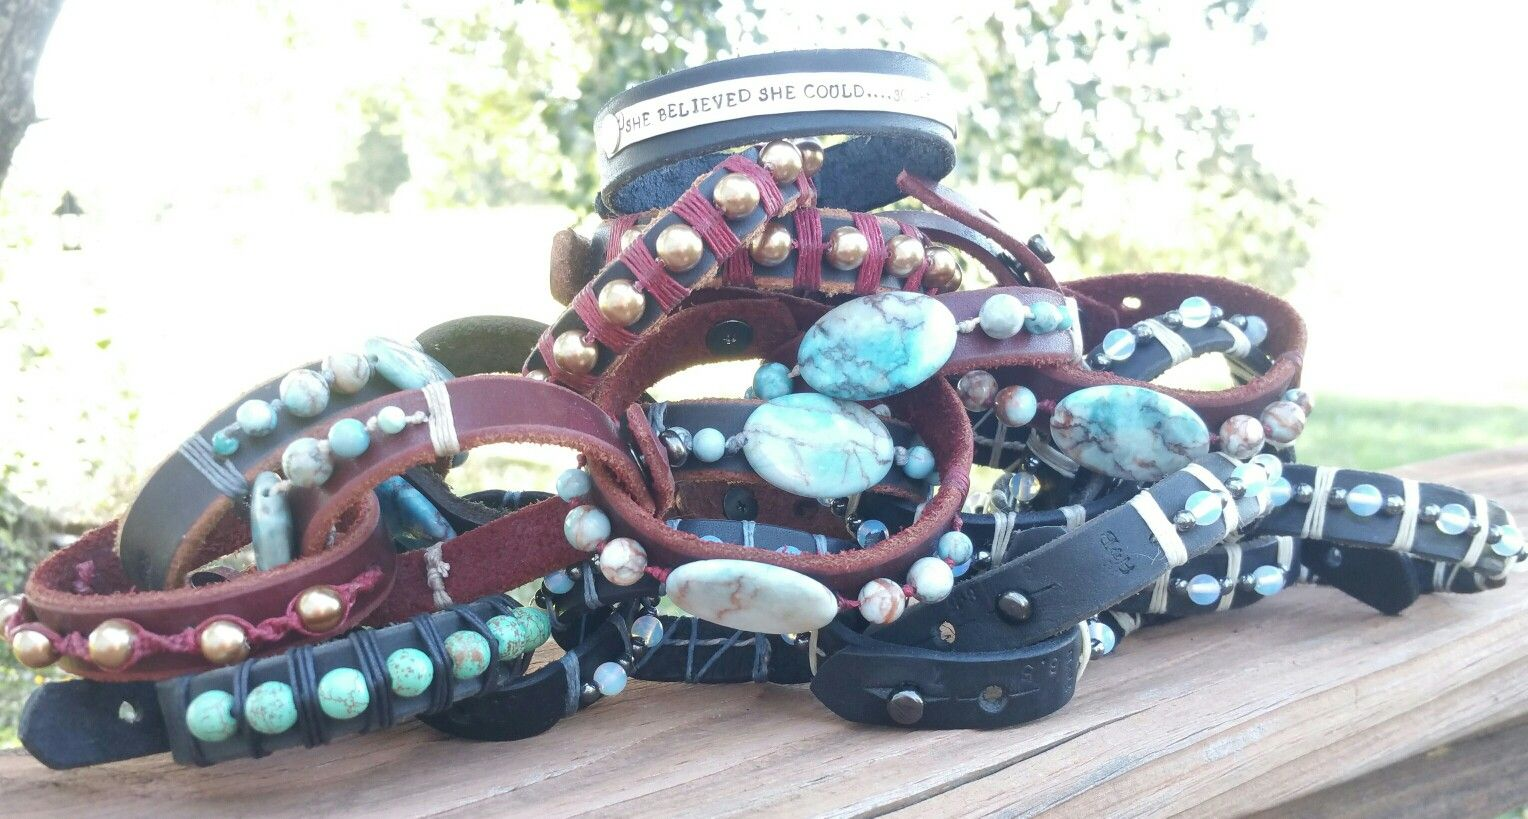 Leather bracelets with various stones and pearls,  some with sterling silver quotes, ready for hippie tipi barn sale and gypsy moon market!